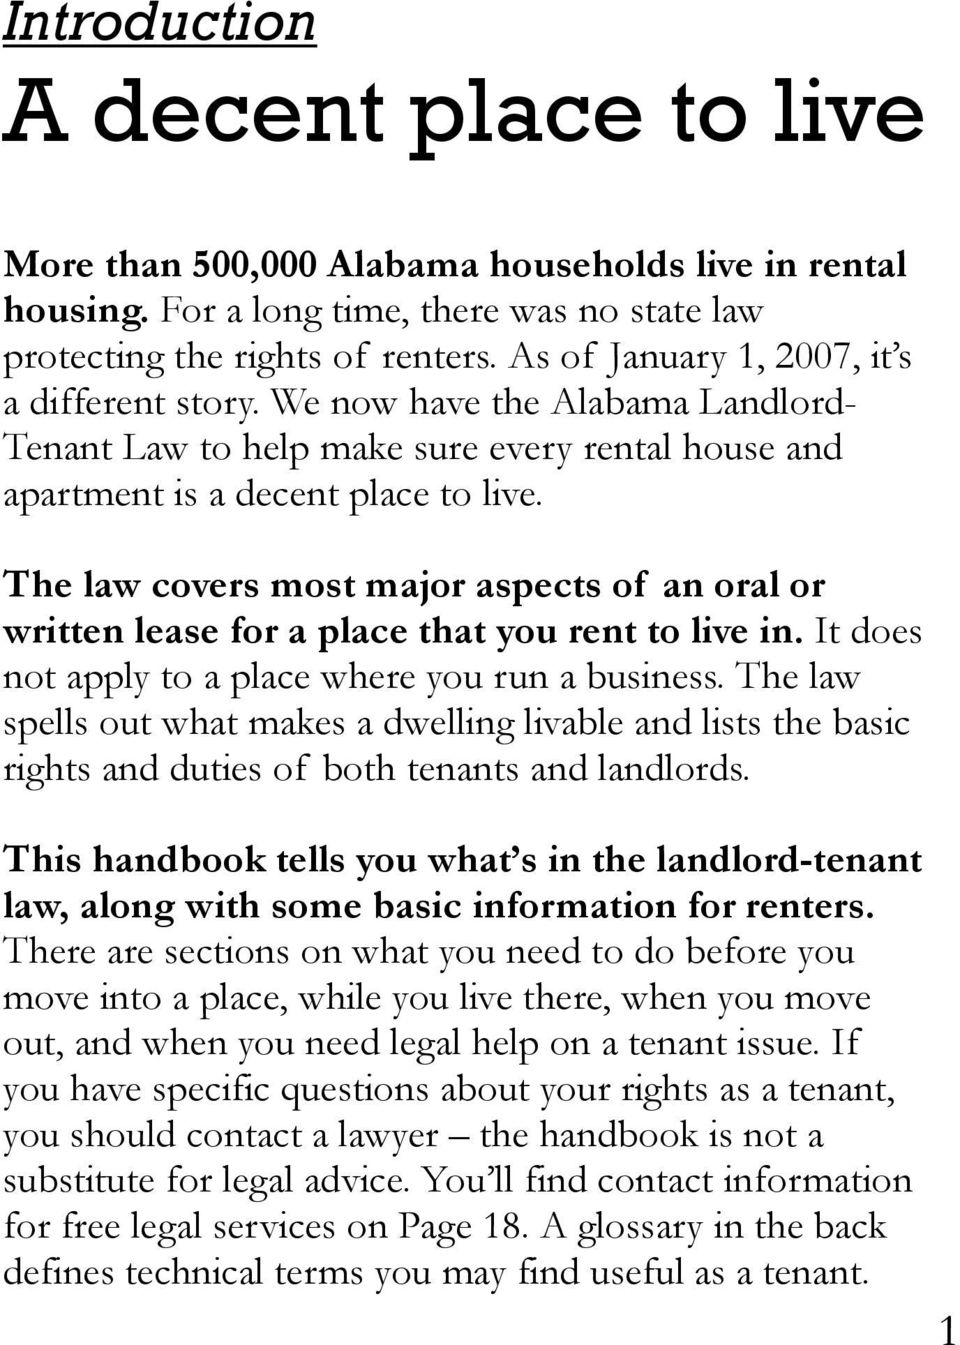 The law covers most major aspects of an oral or written lease for a place that you rent to live in. It does not apply to a place where you run a business.